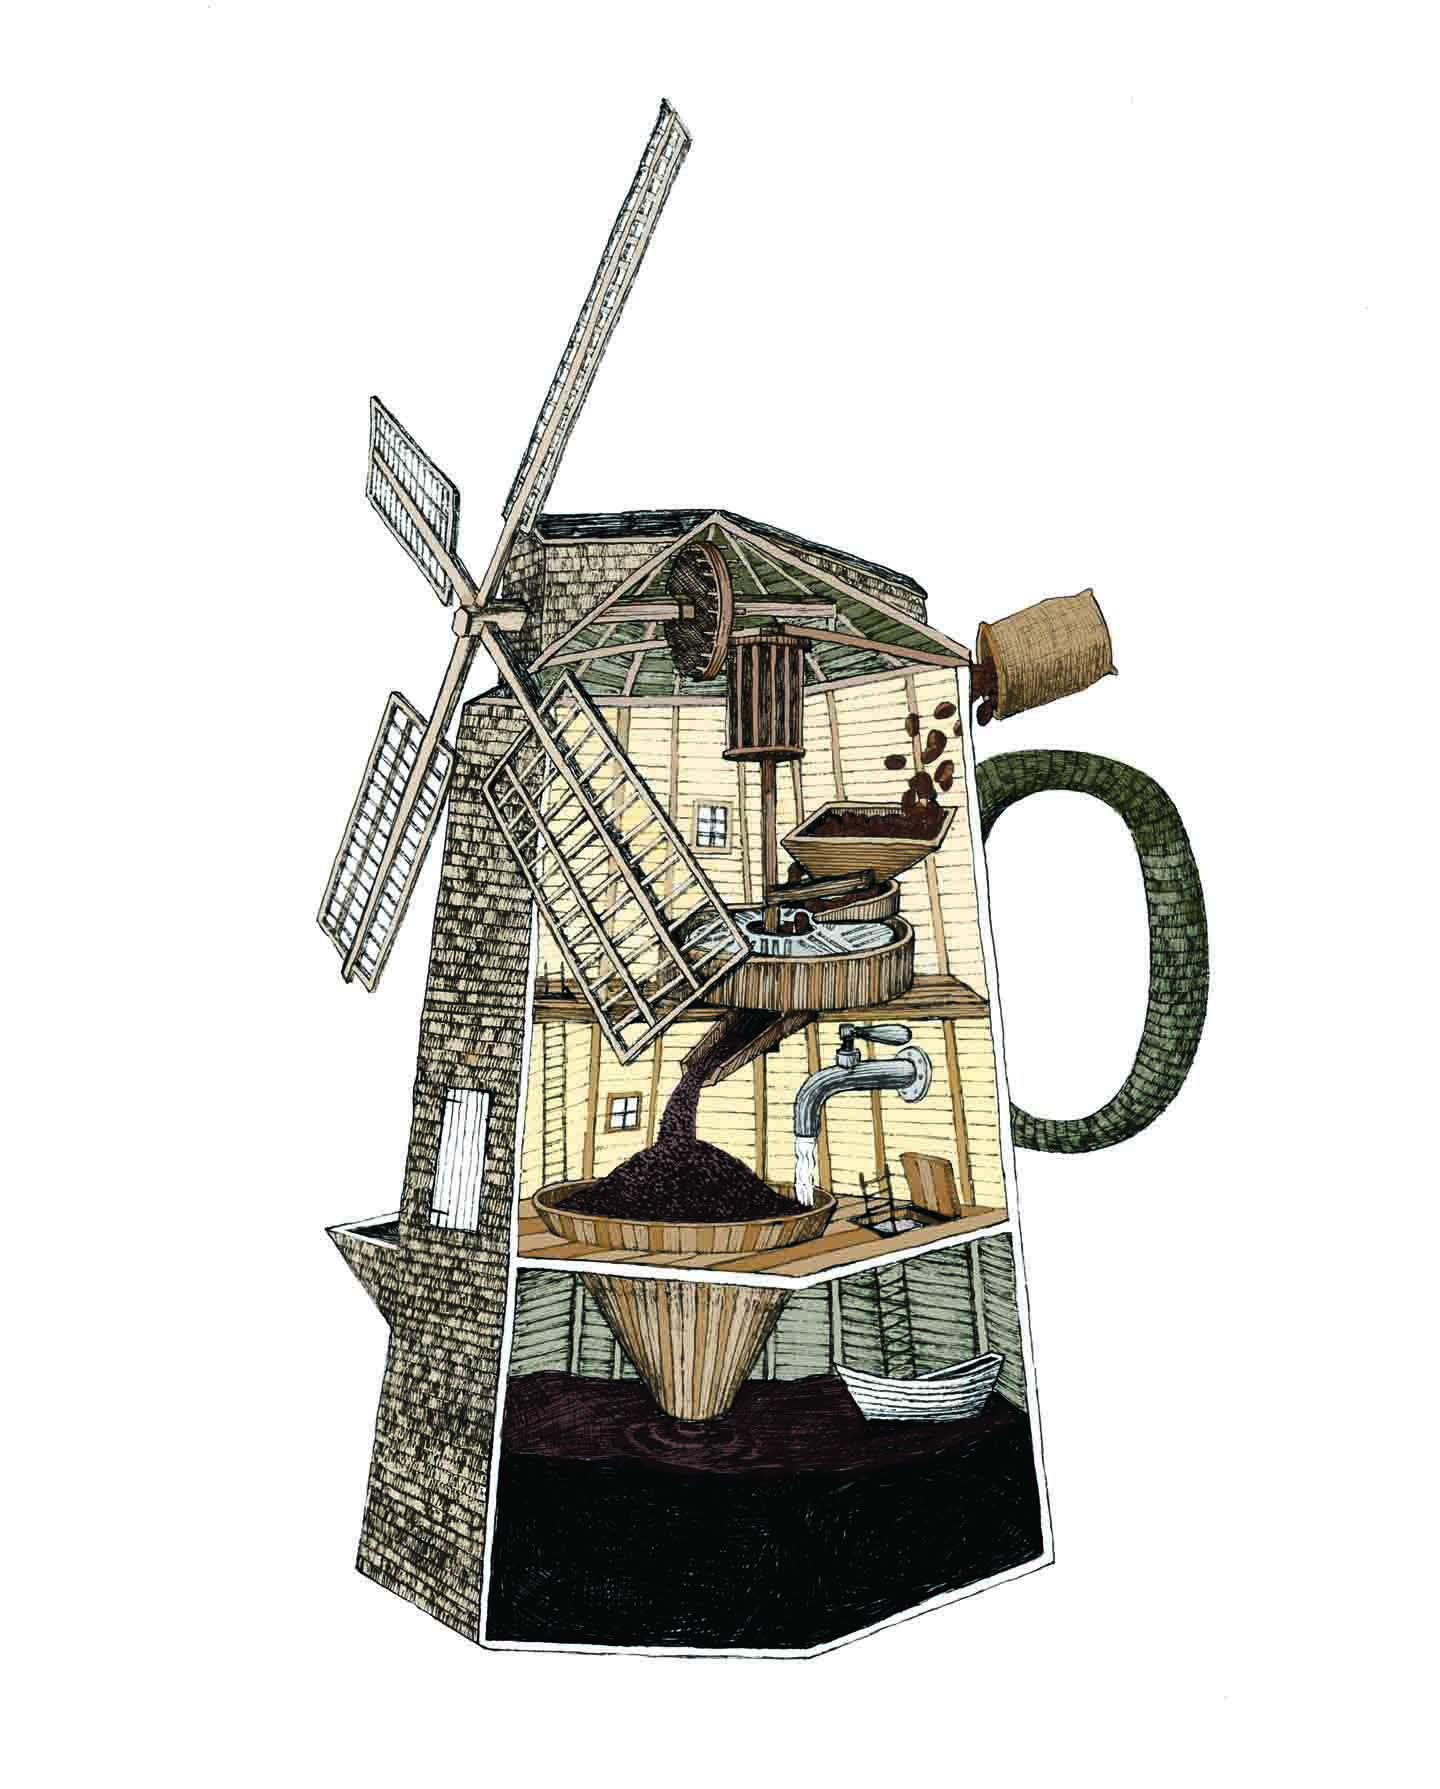 Grindstone Coffee Mill Ink And Digital Commissioned Illustration For Company 2016